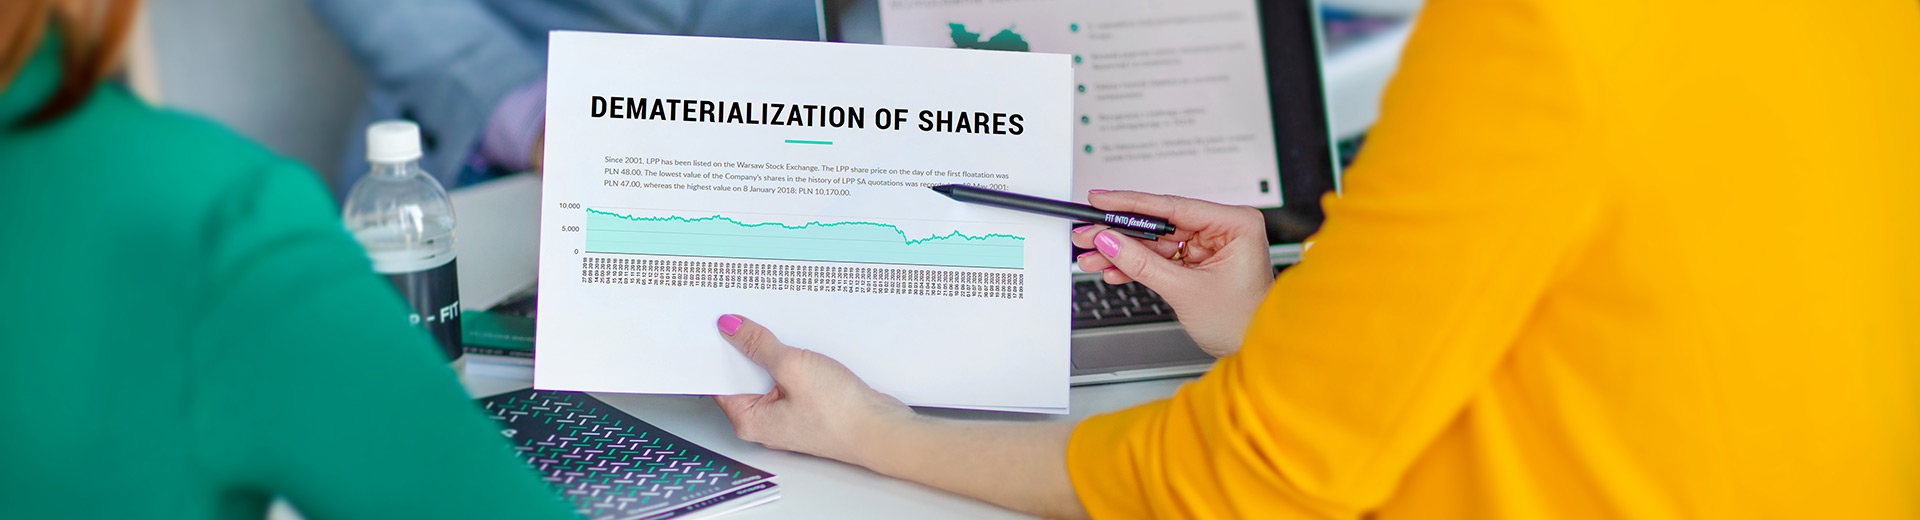 Dematerialisation of shares